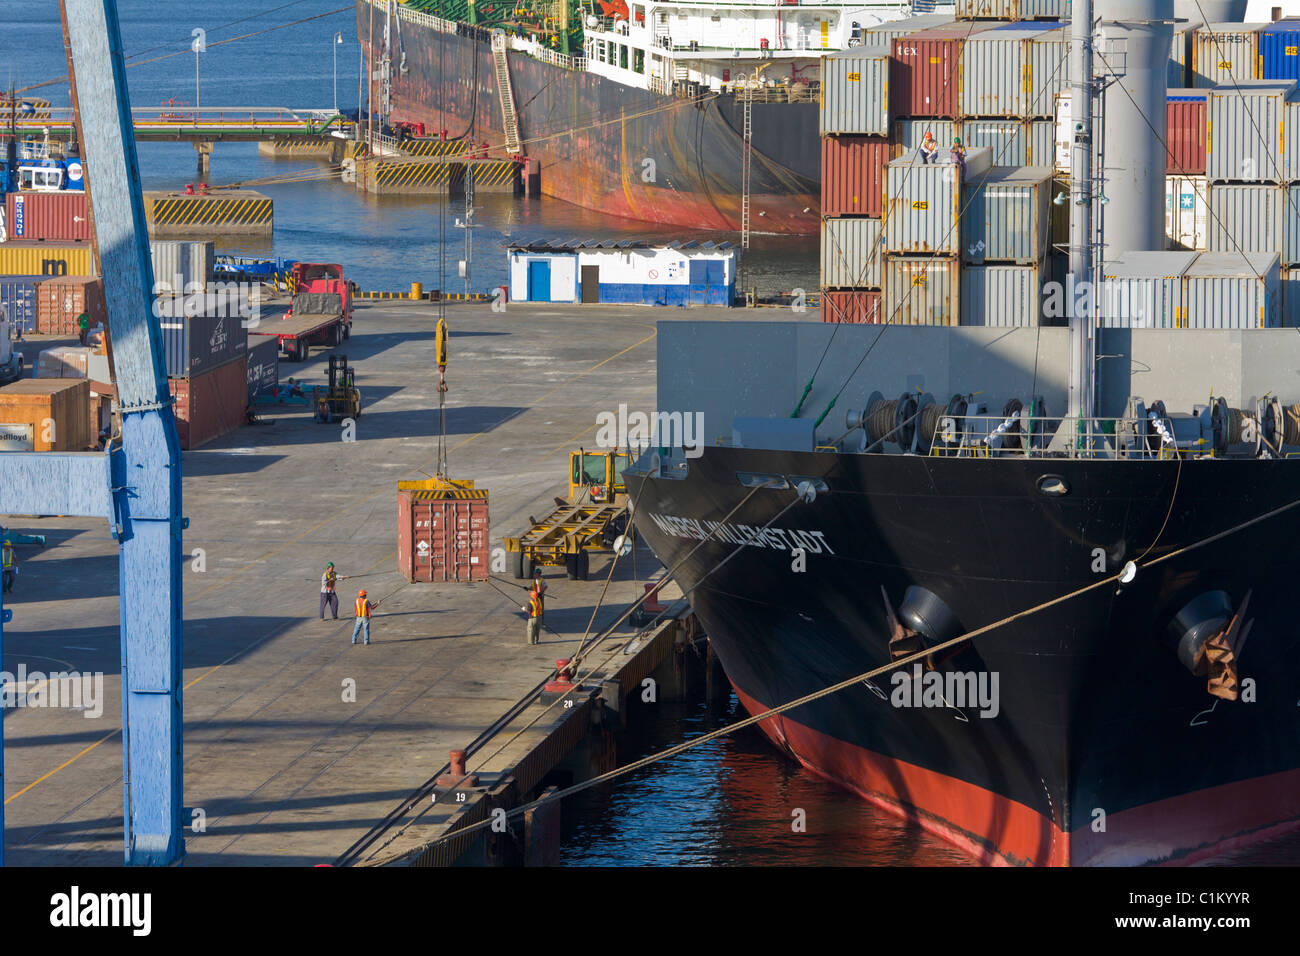 Container ship being unloaded, Port of Corinto, Nicaragua Stock Photo